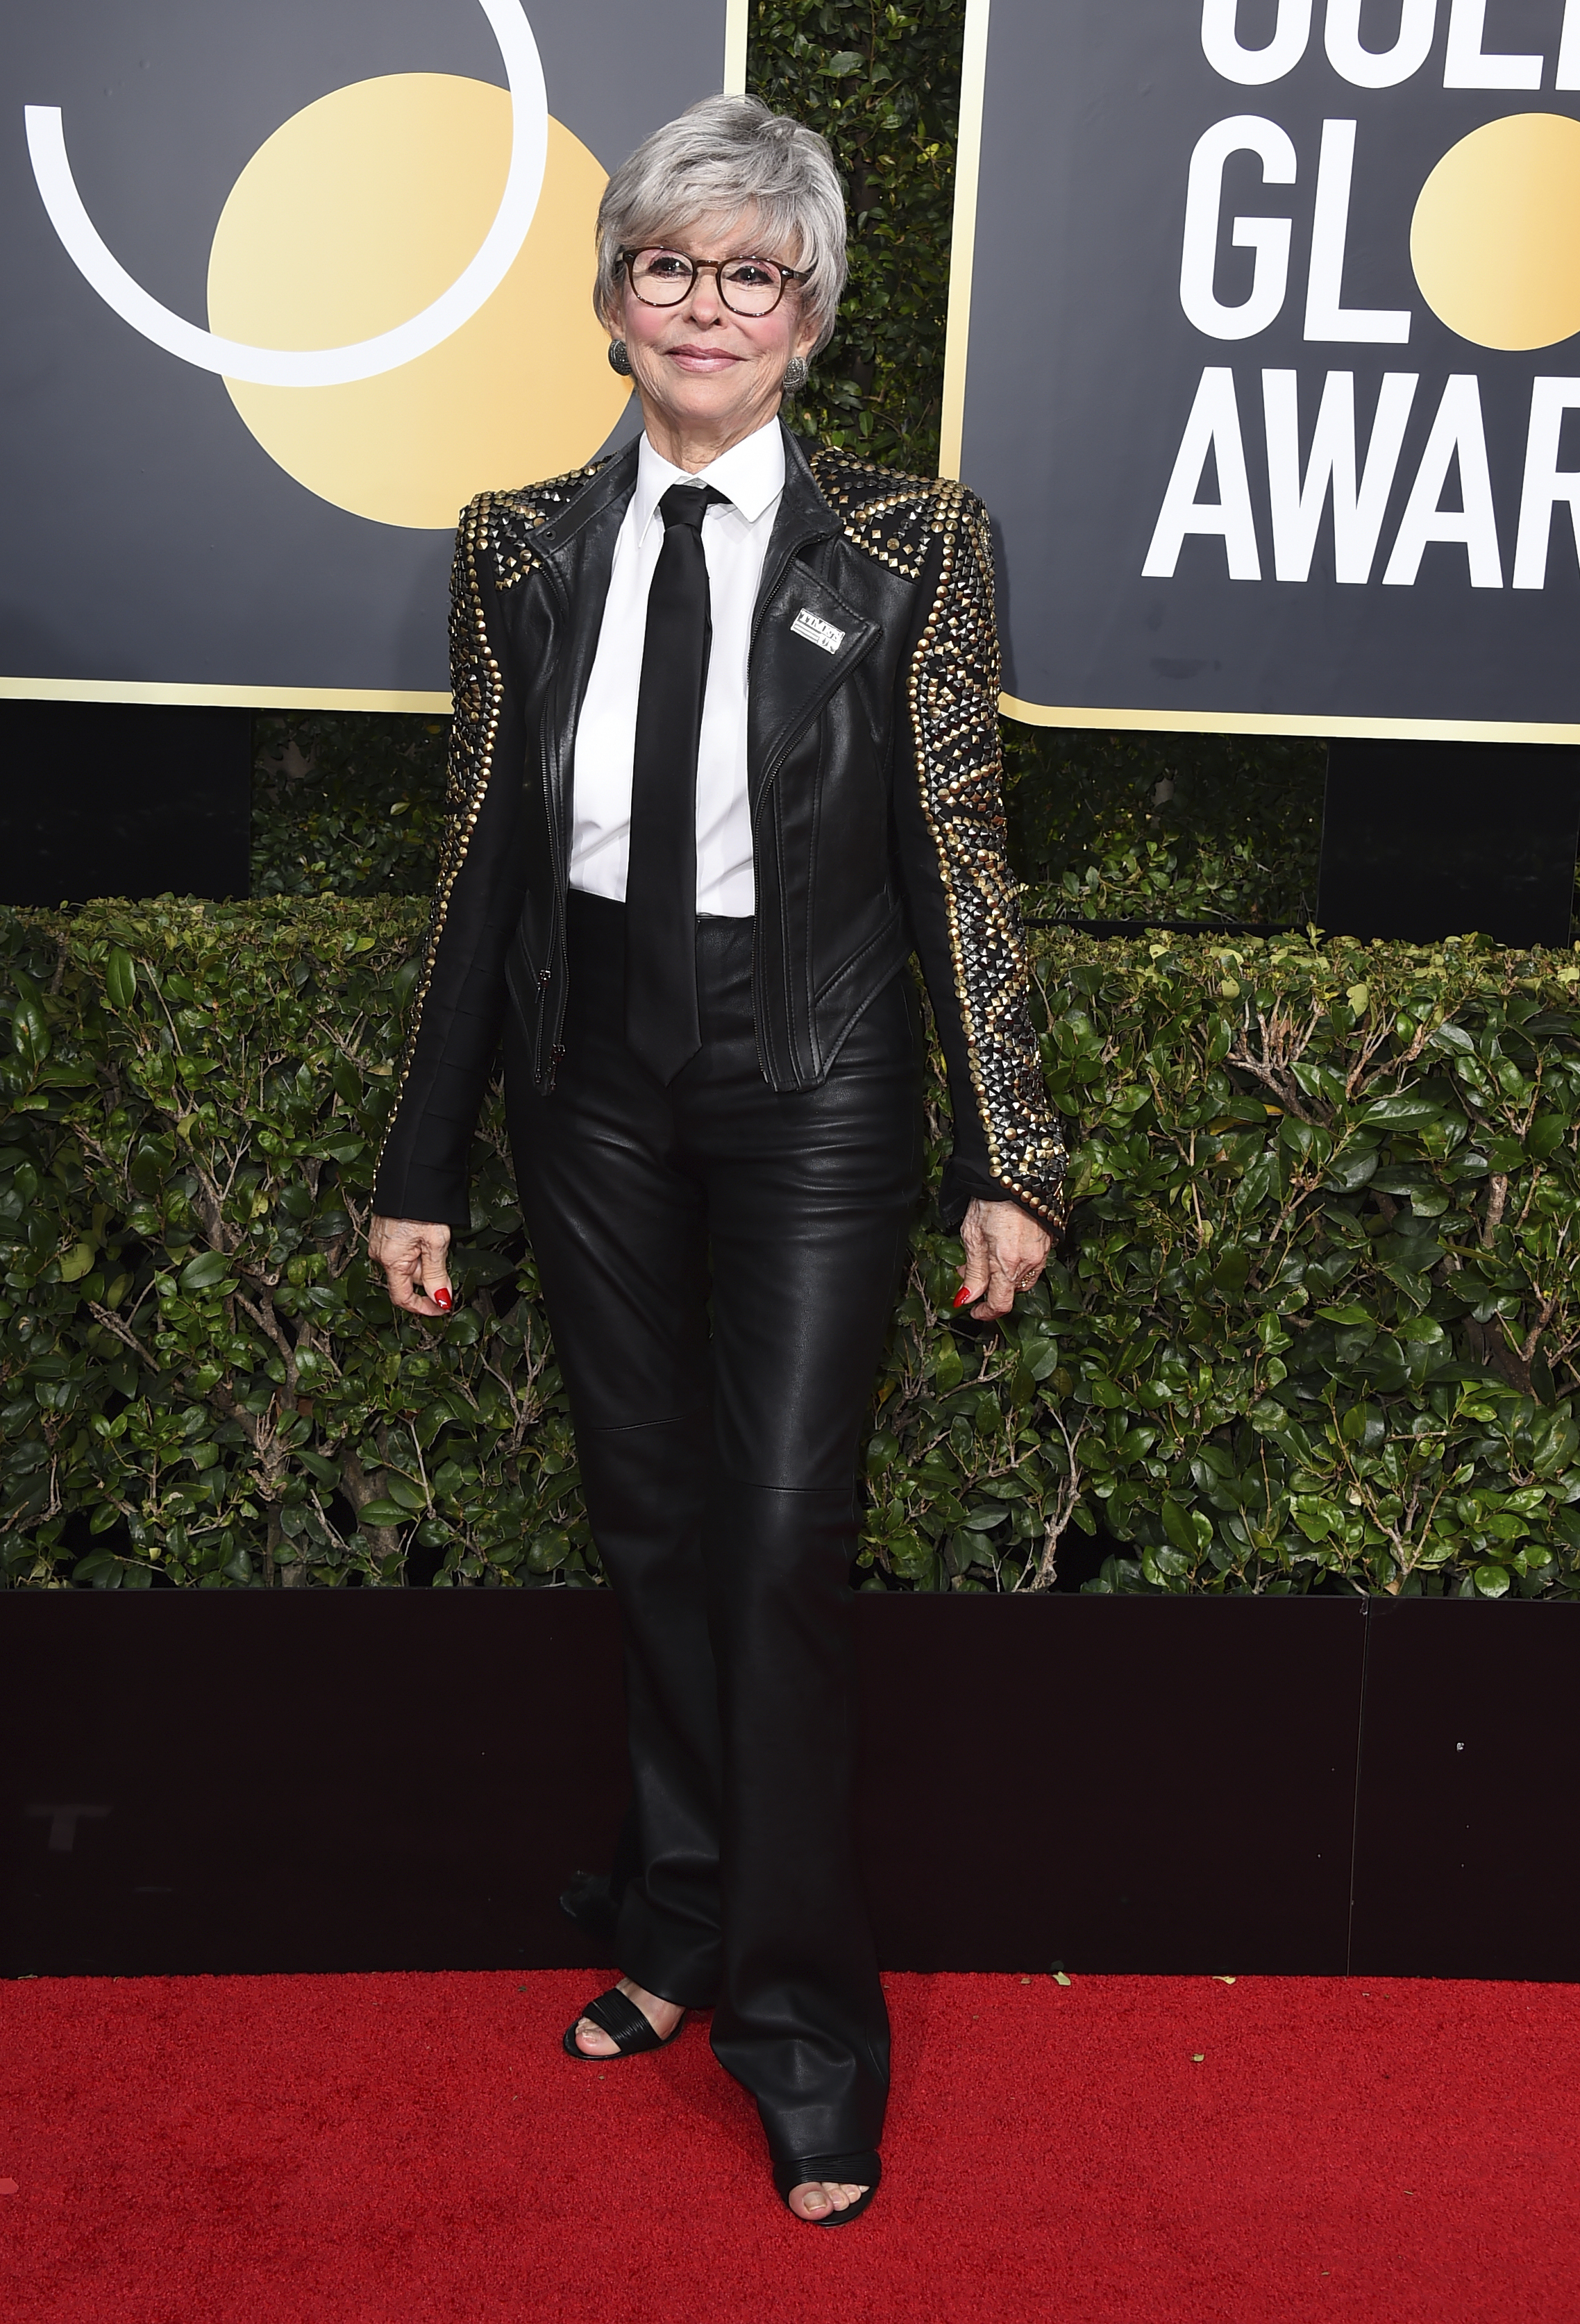 <div class='meta'><div class='origin-logo' data-origin='AP'></div><span class='caption-text' data-credit='Jordan Strauss/Invision/AP'>Rita Moreno arrives at the 75th annual Golden Globe Awards at the Beverly Hilton Hotel on Sunday, Jan. 7, 2018, in Beverly Hills, Calif.</span></div>